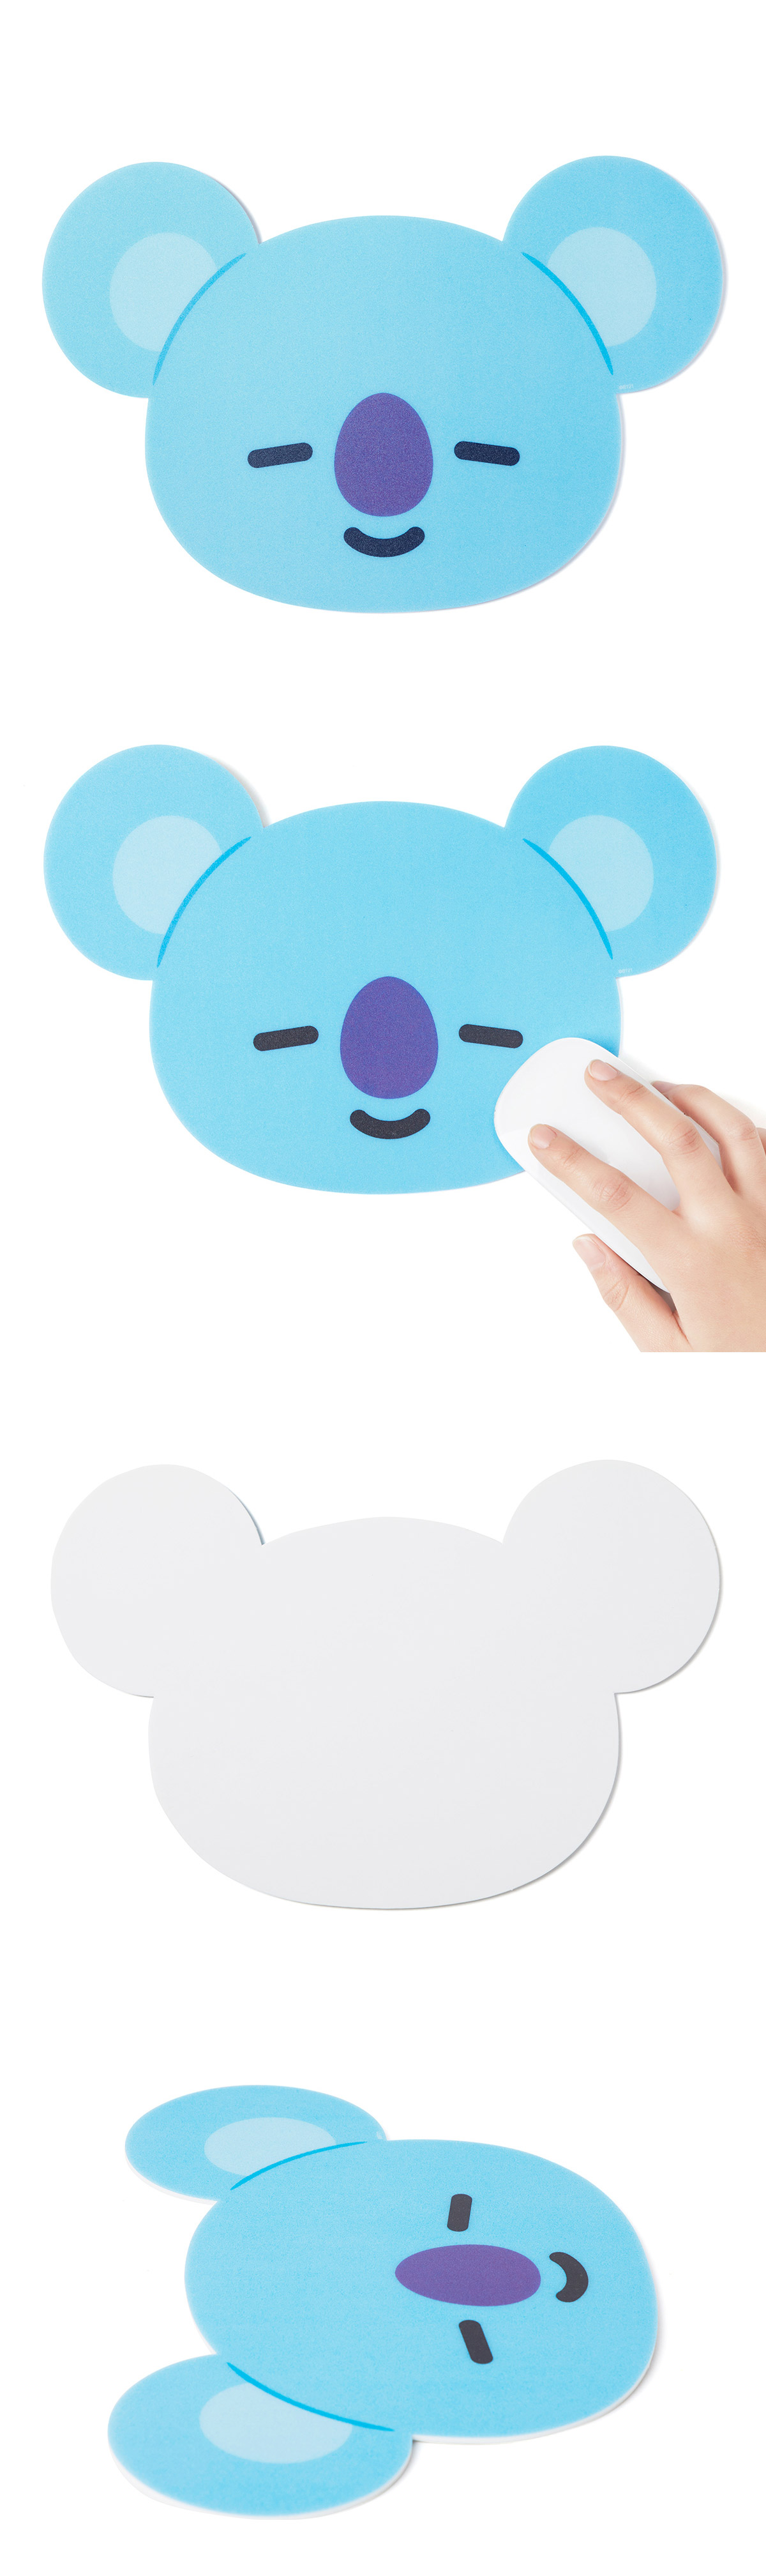 bt21_mousepad_13.jpg